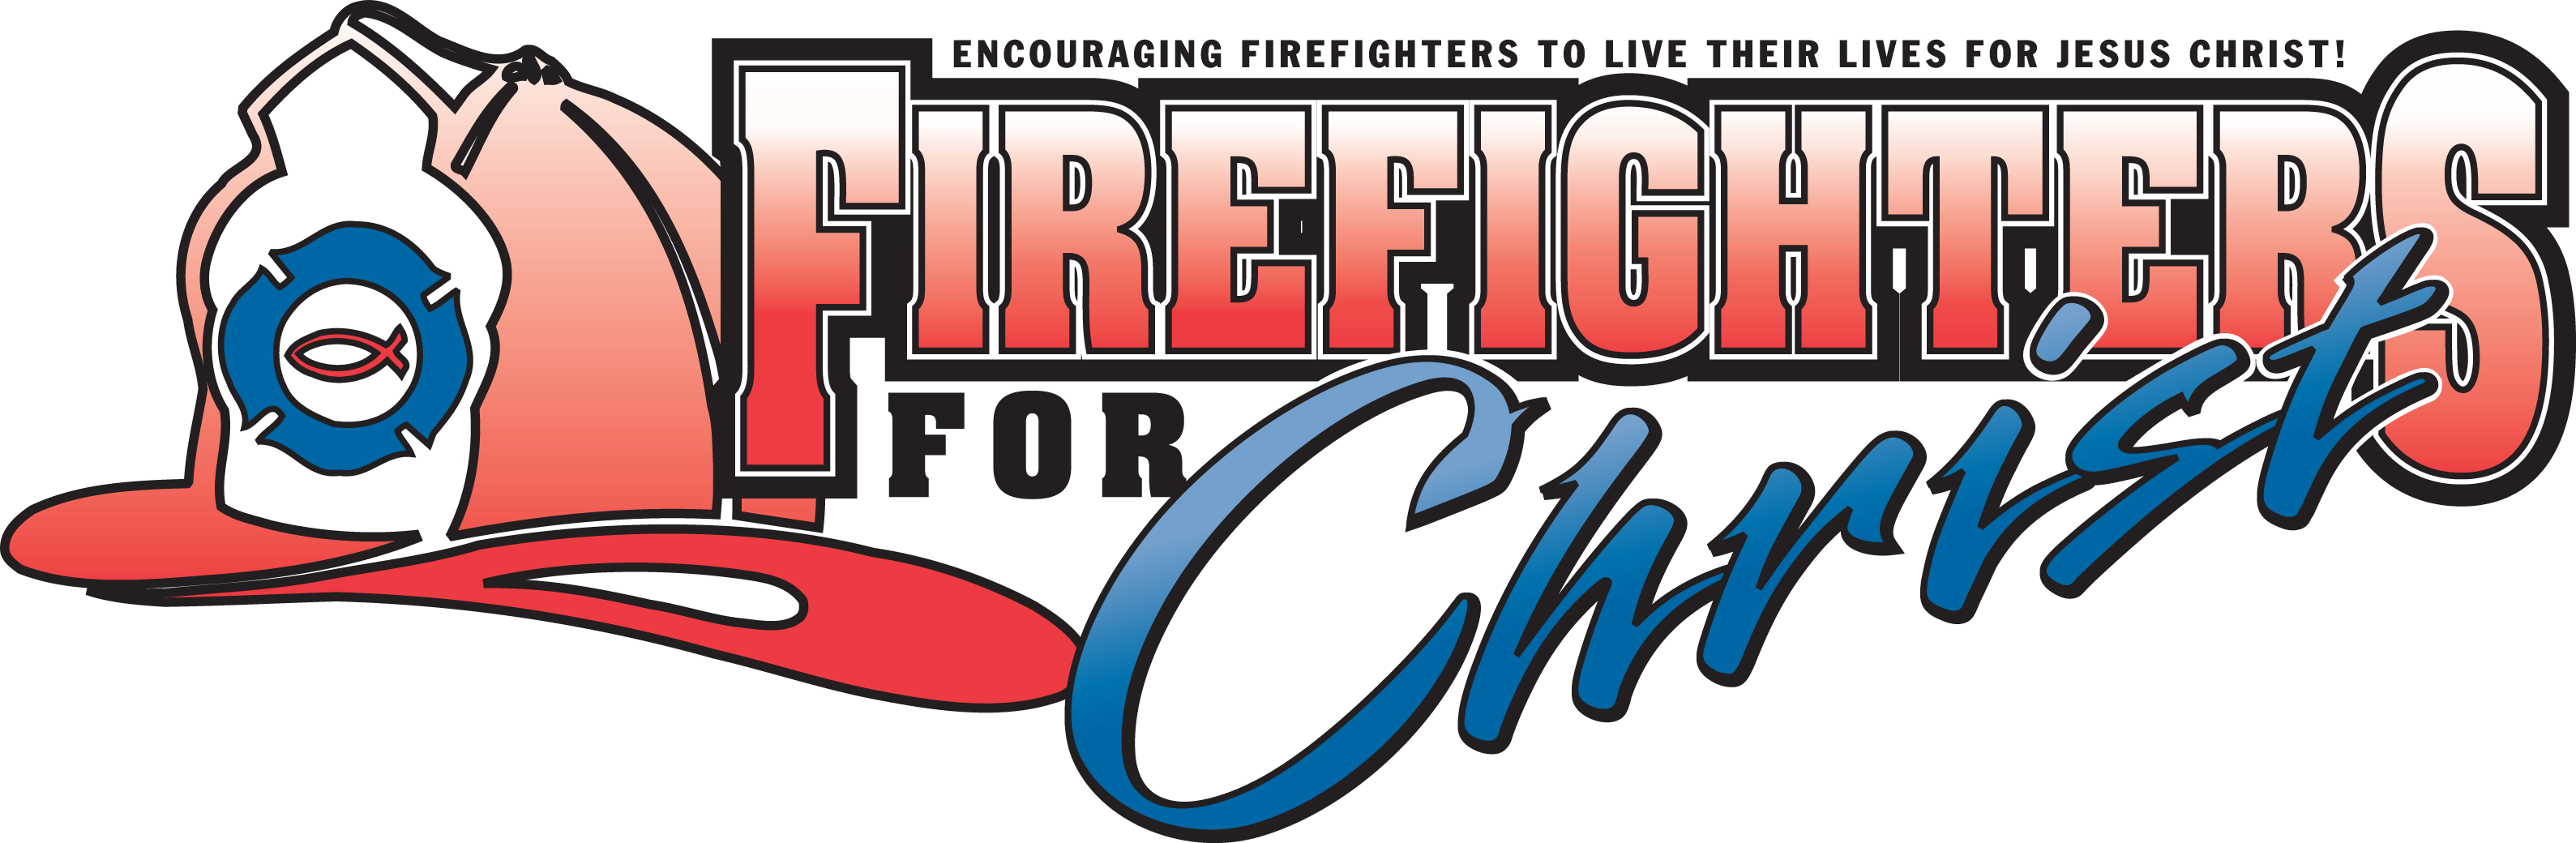 Fire_Firefighters for Christ Logo